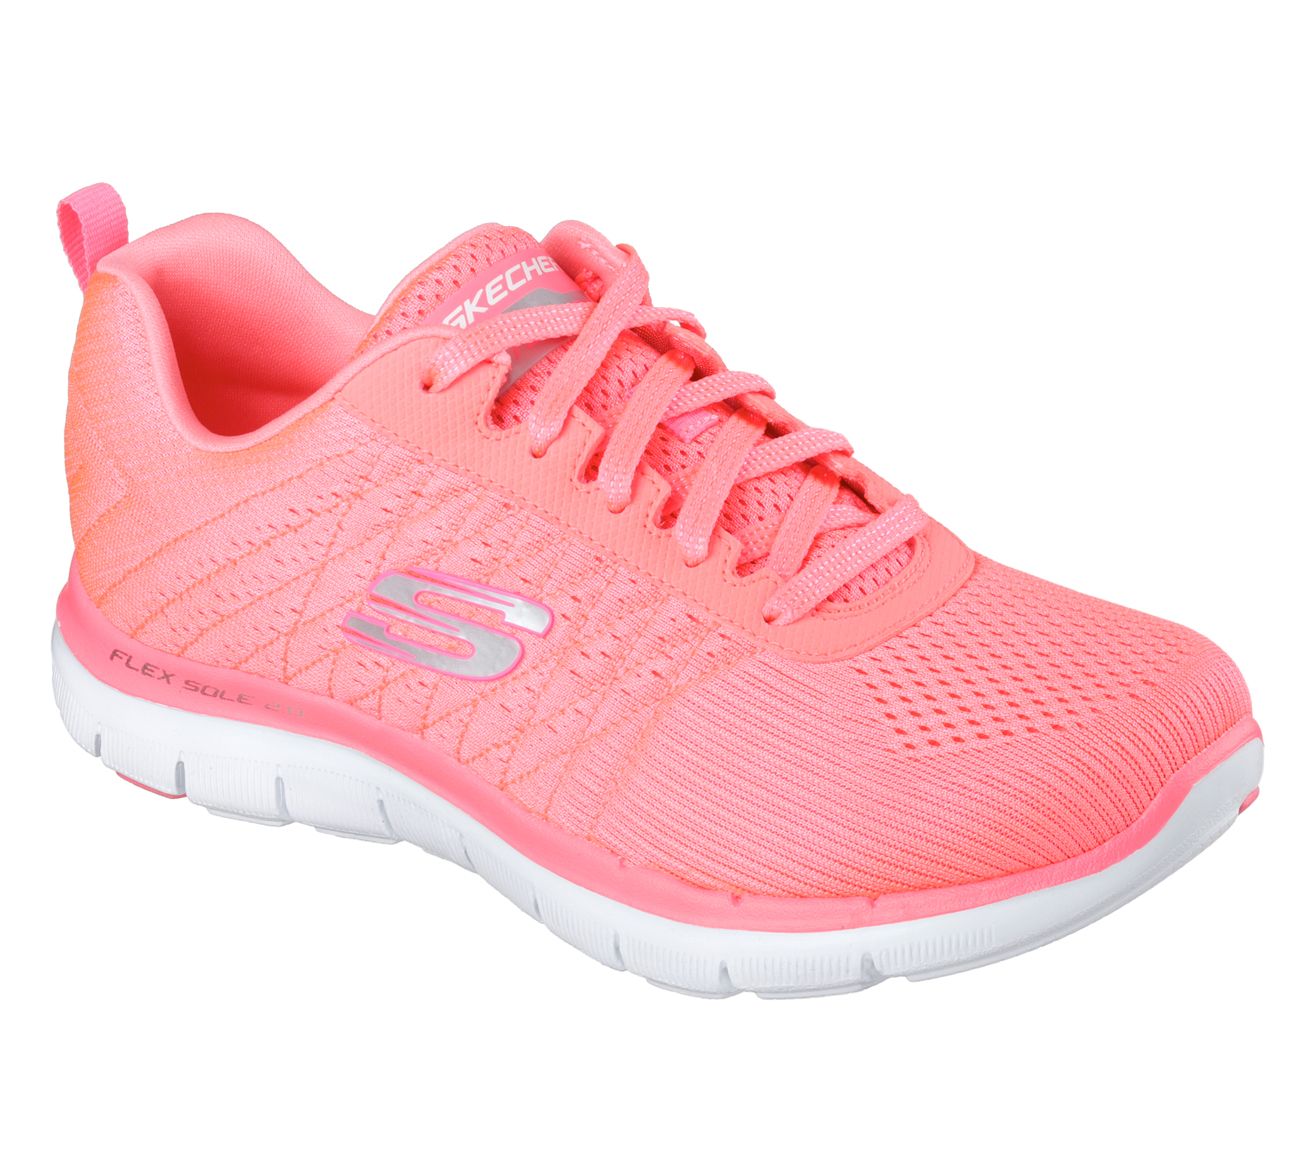 Best Shoes For Walking On Coral